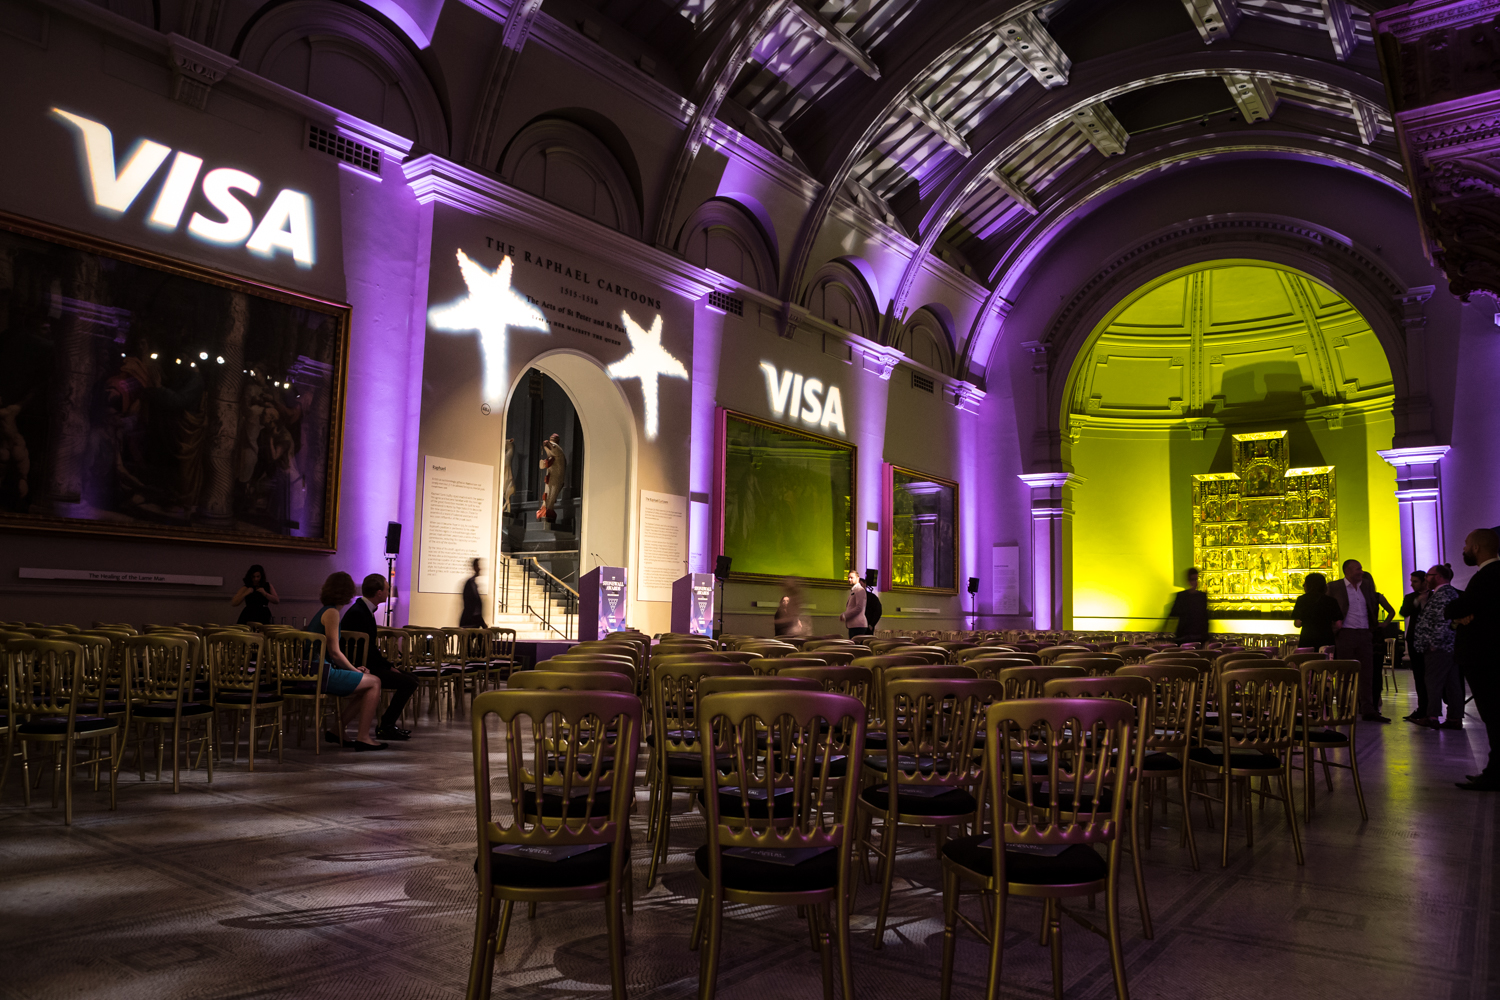 Creventive V&A Victoria & Albert Event Stonewall production Management Catering Design